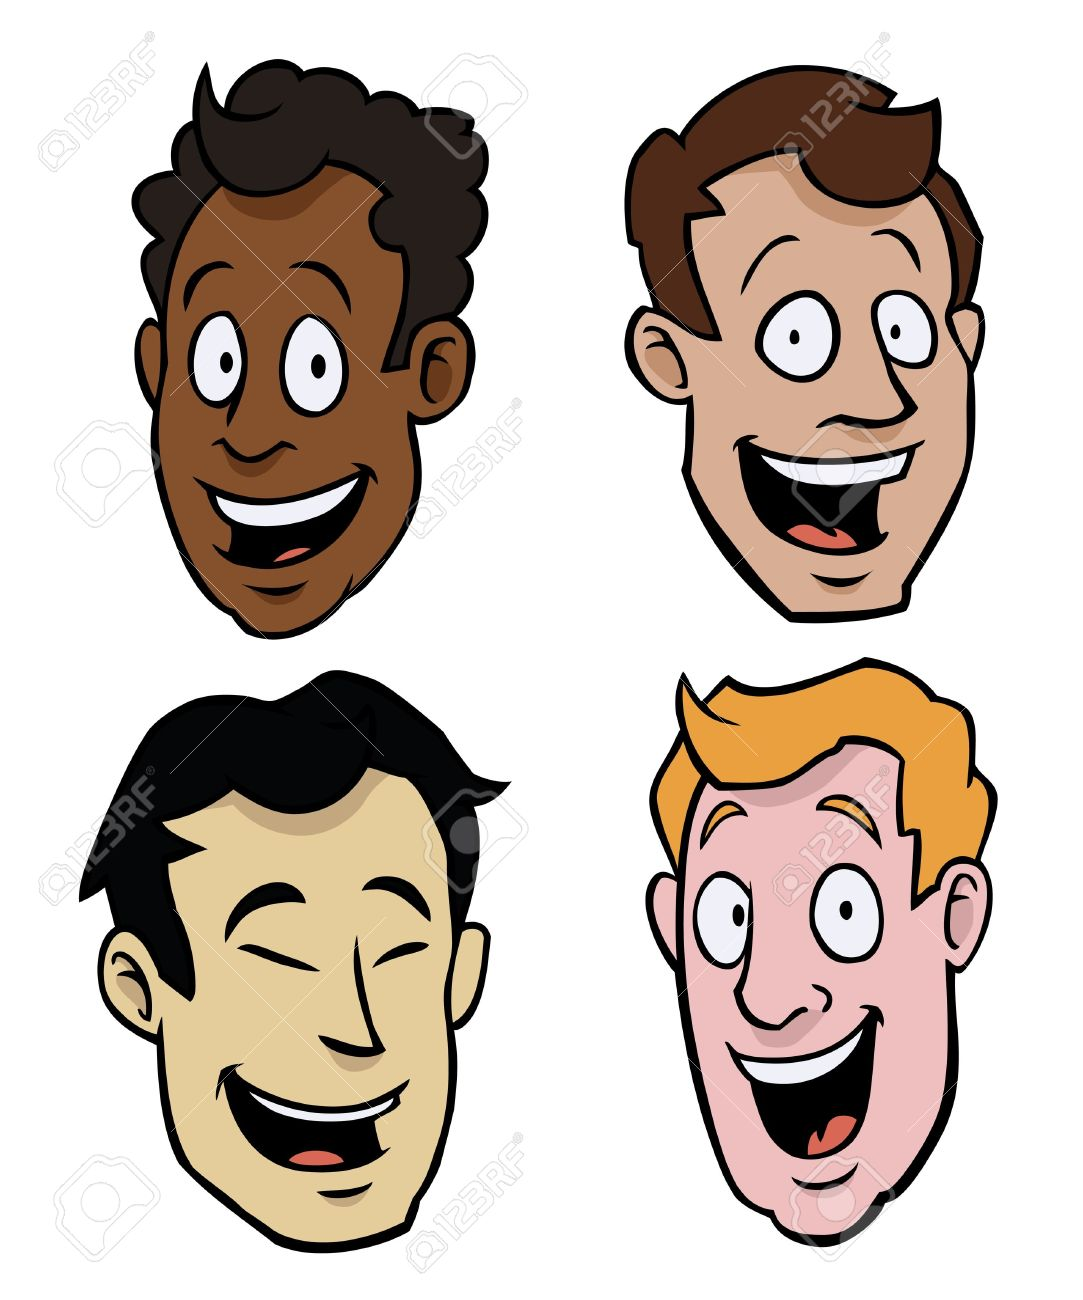 Clipart Different Races.